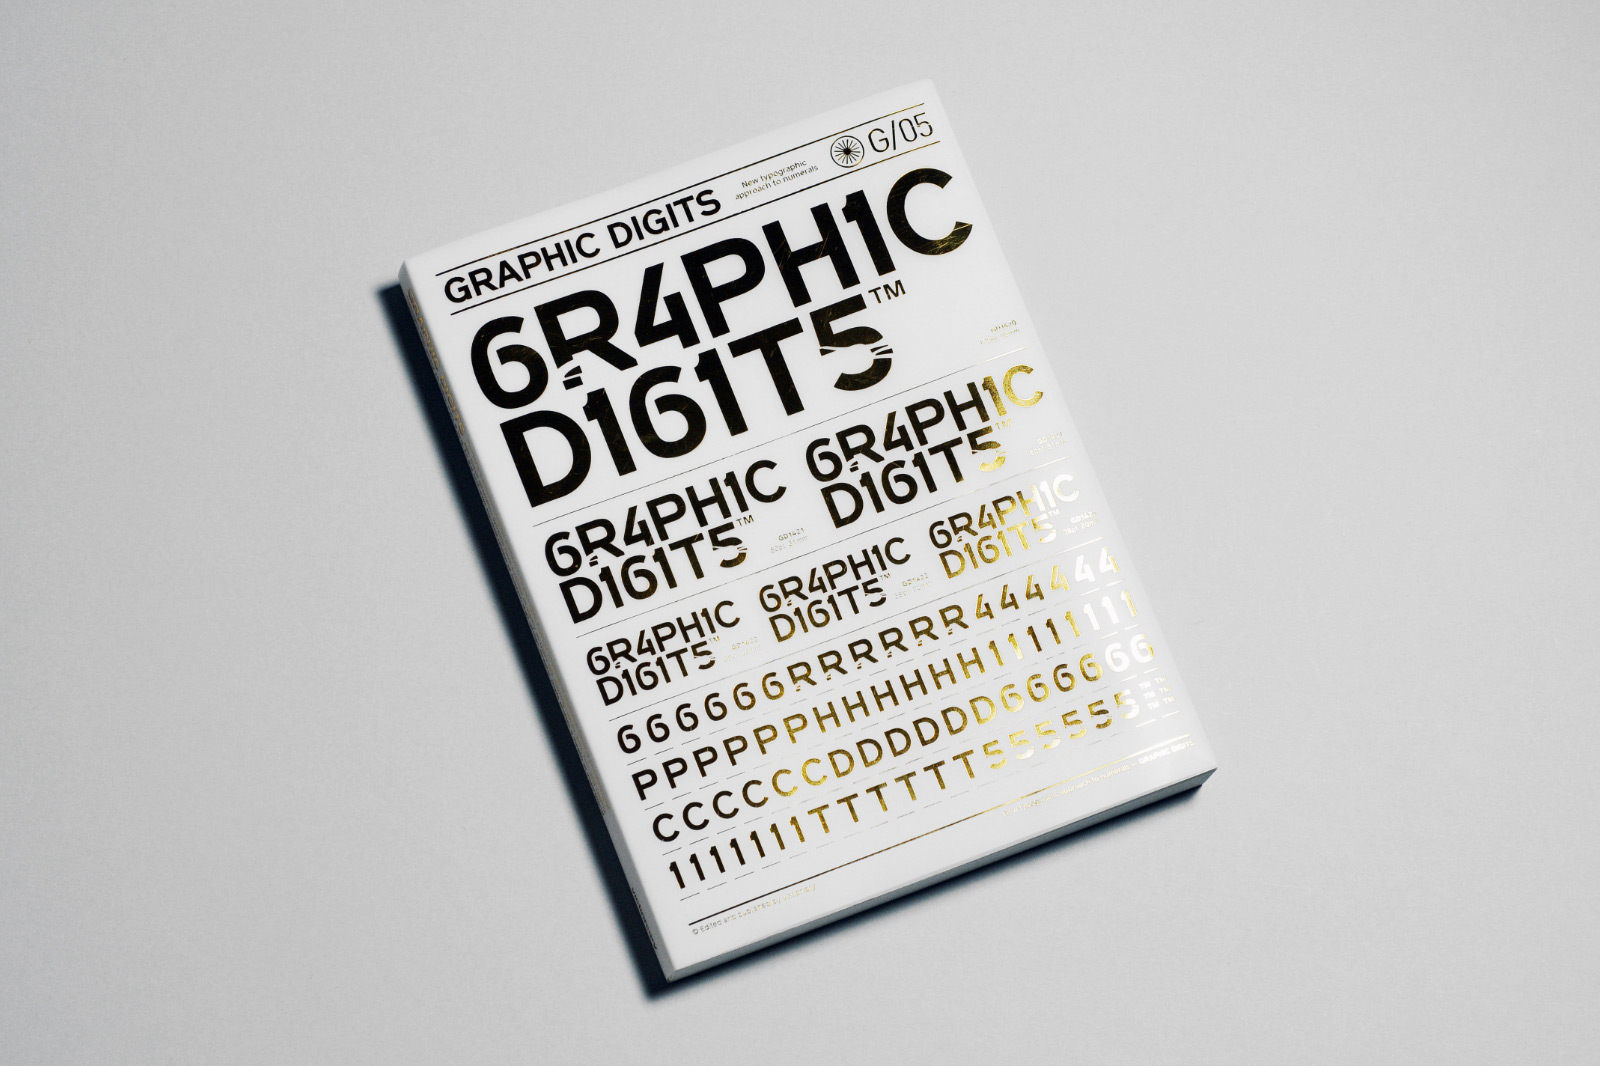 Graphic Digits book cover.